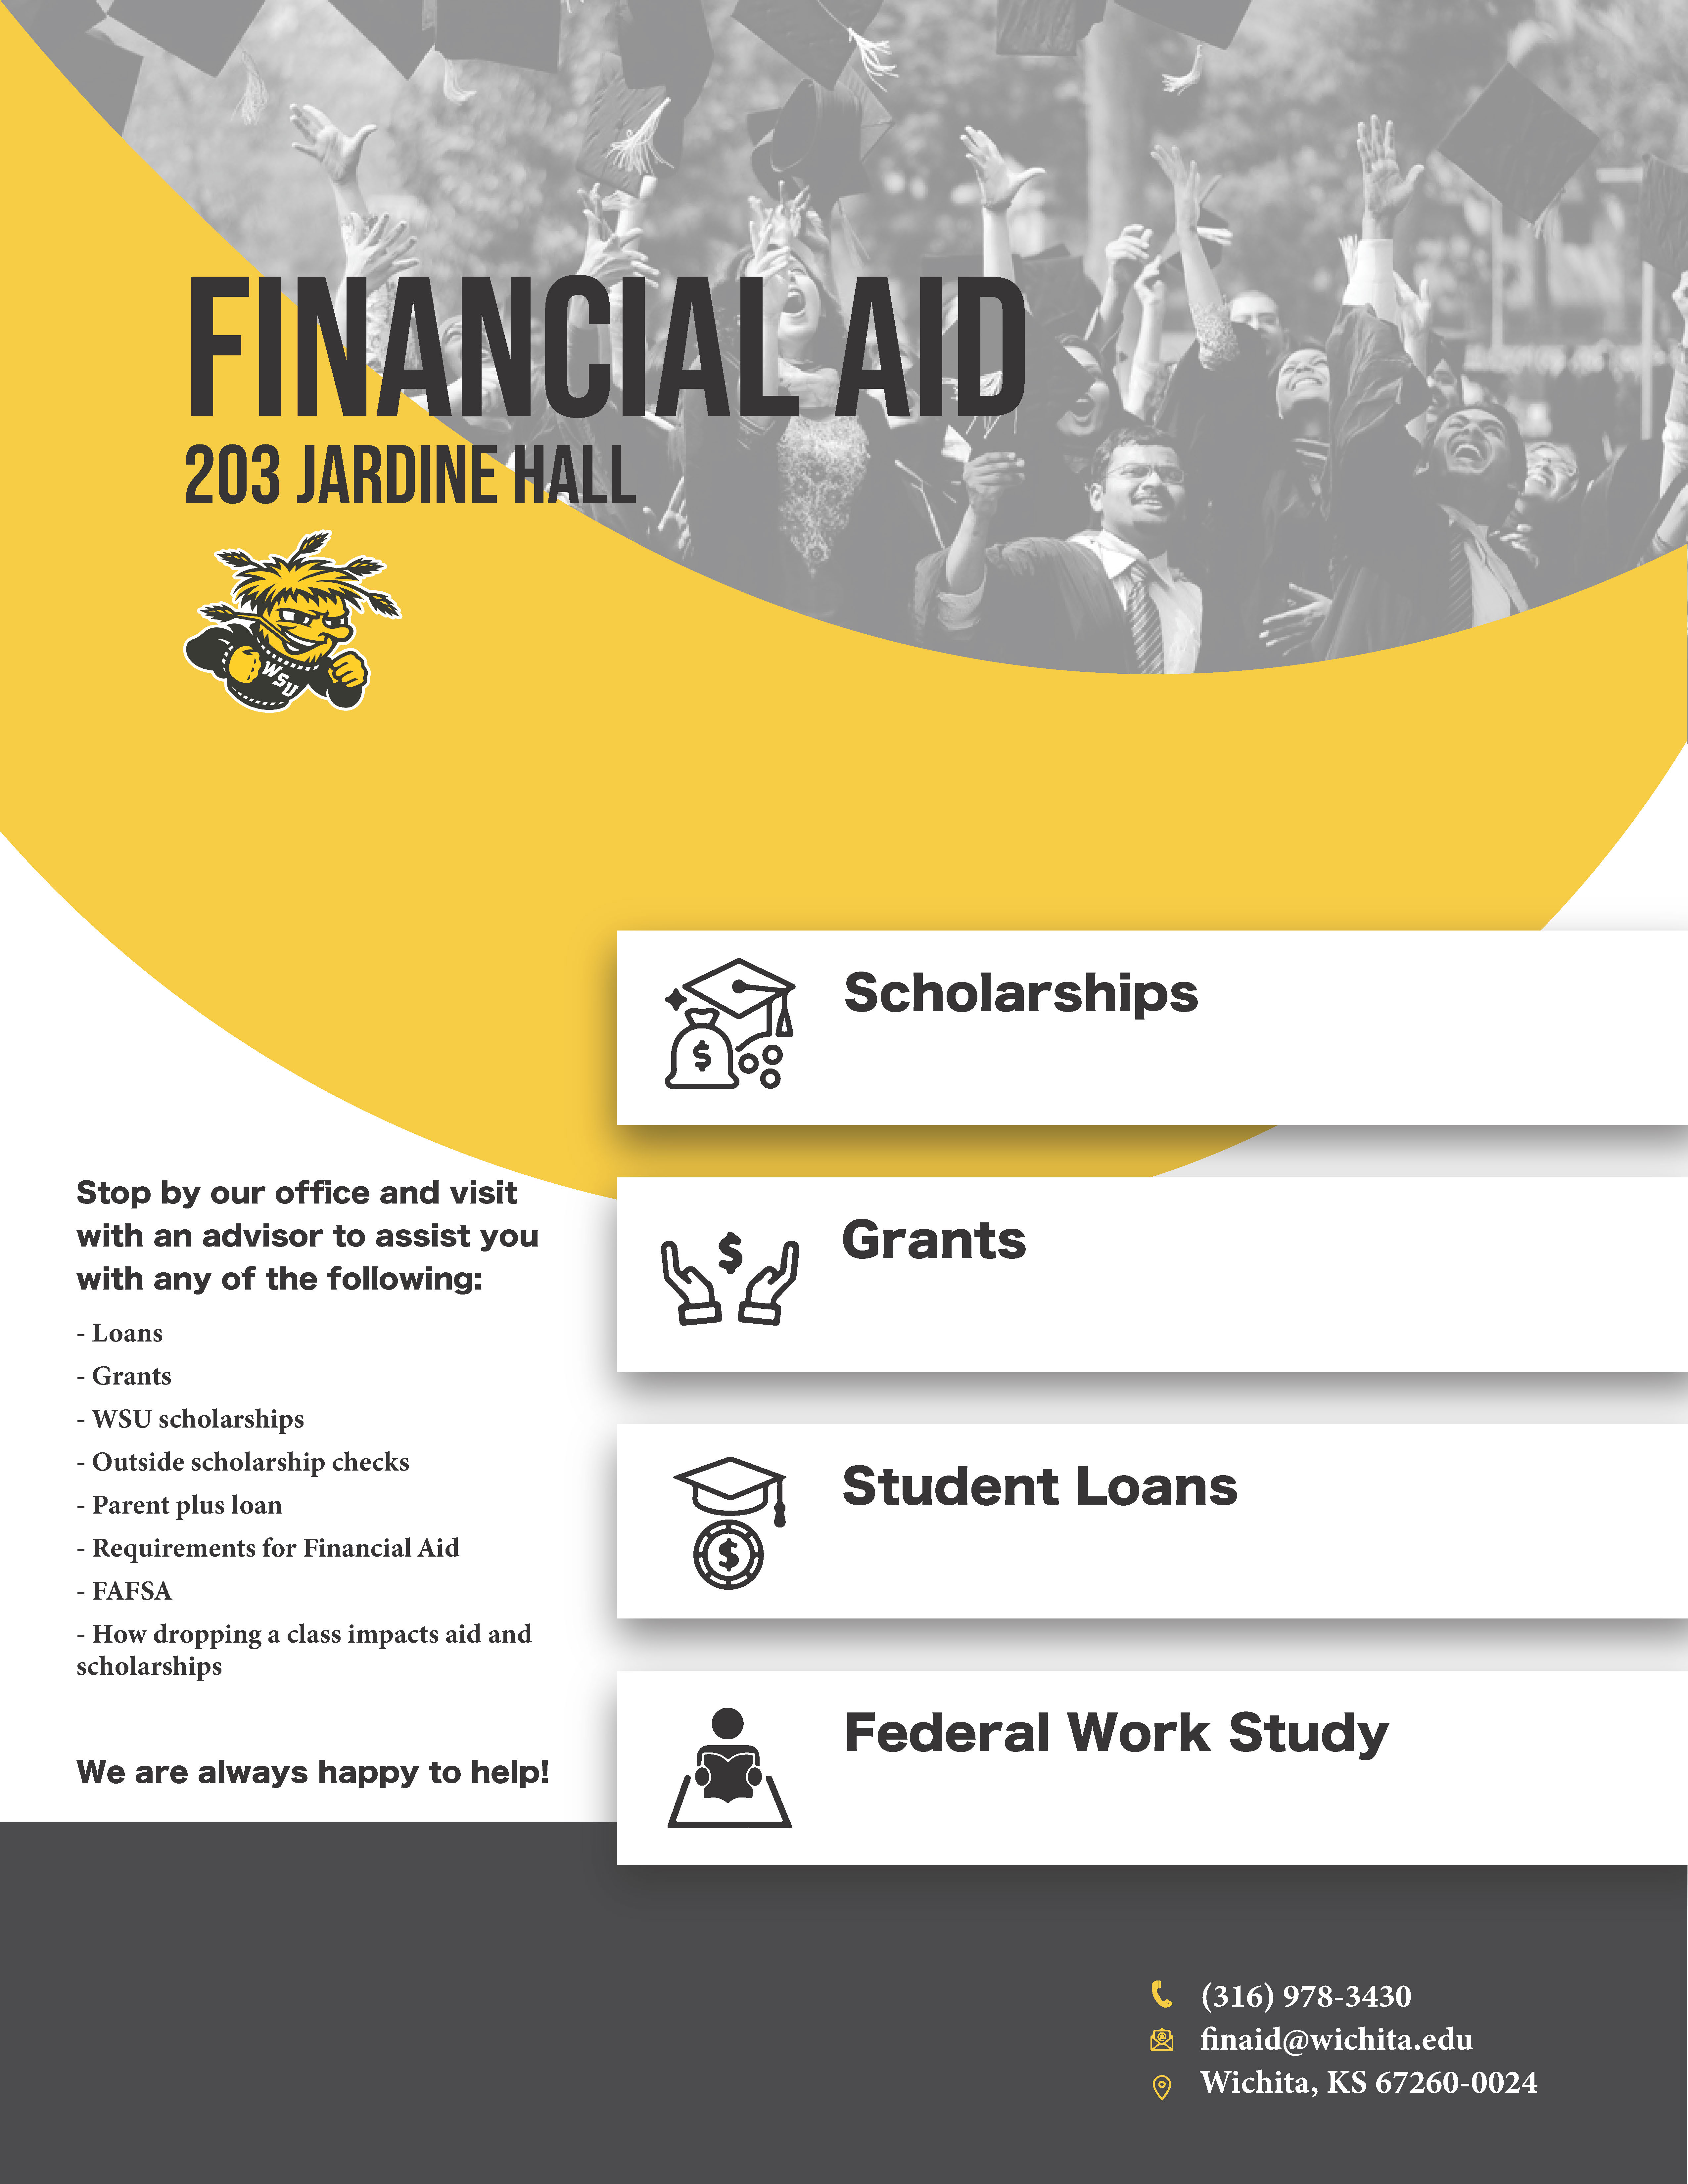 Who to Contact - Financial Aid